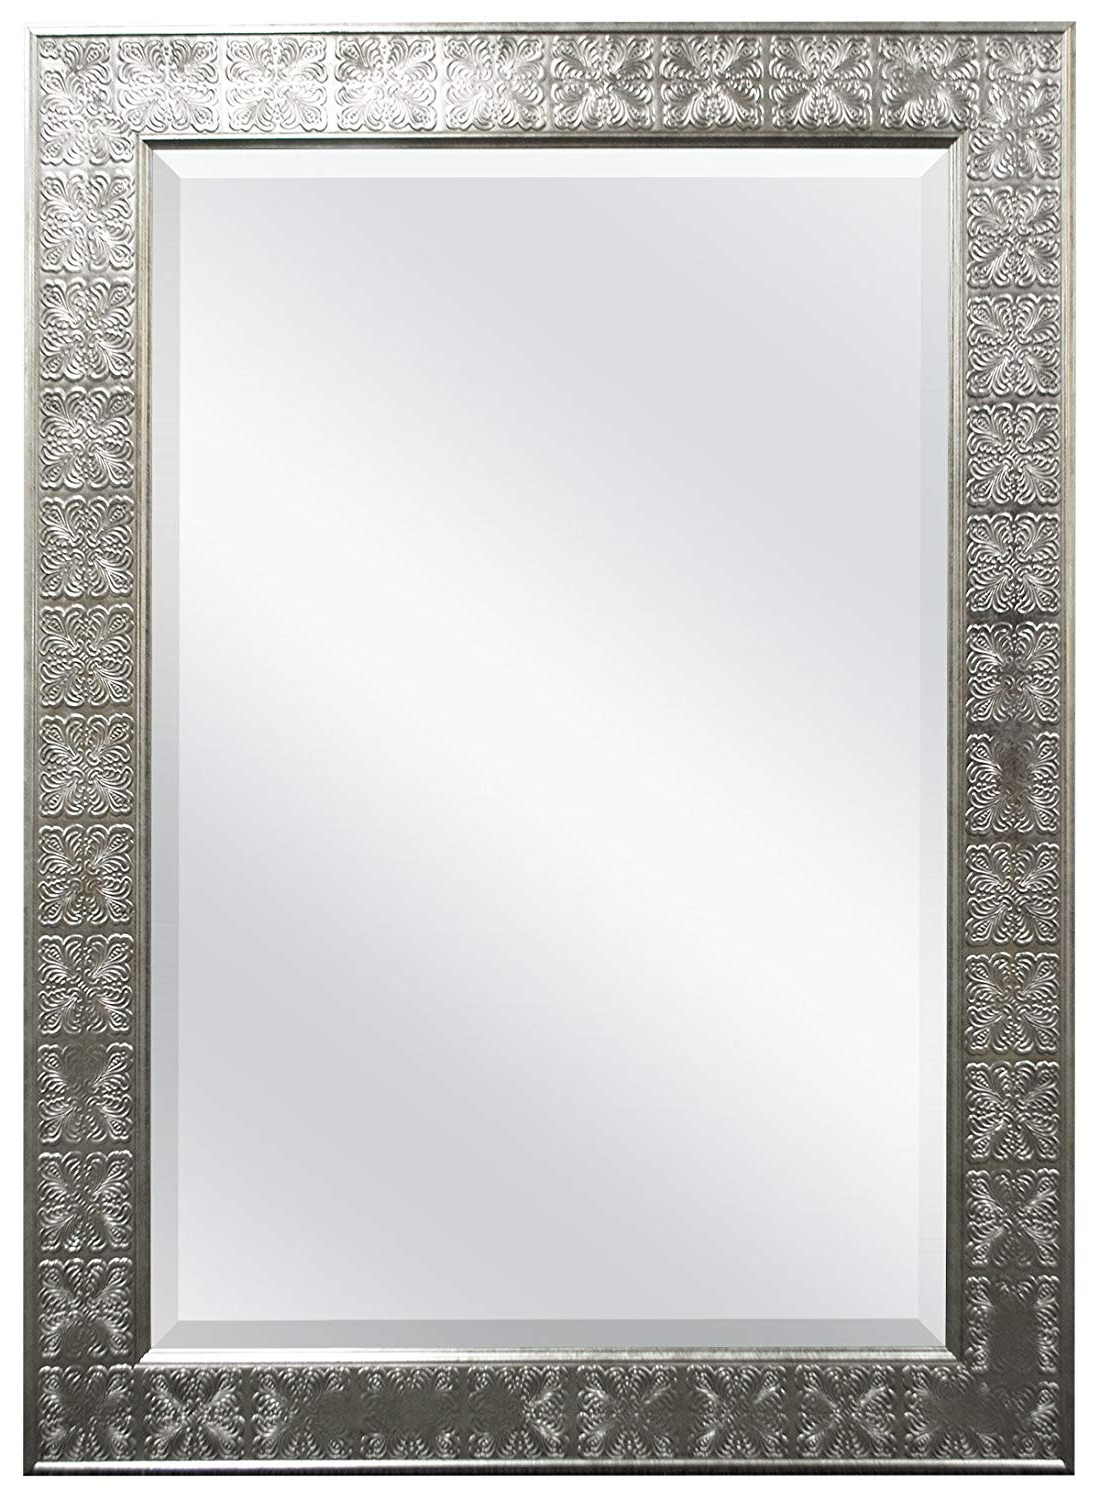 Most Up To Date 24 X 36 Wall Mirrors With Regard To Mcs 24X36 Inch Stamped Medallion Wall Mirror, 32X44 Inch Overall Size, Champagne Silver (47700), 3244 Inch, (View 17 of 20)